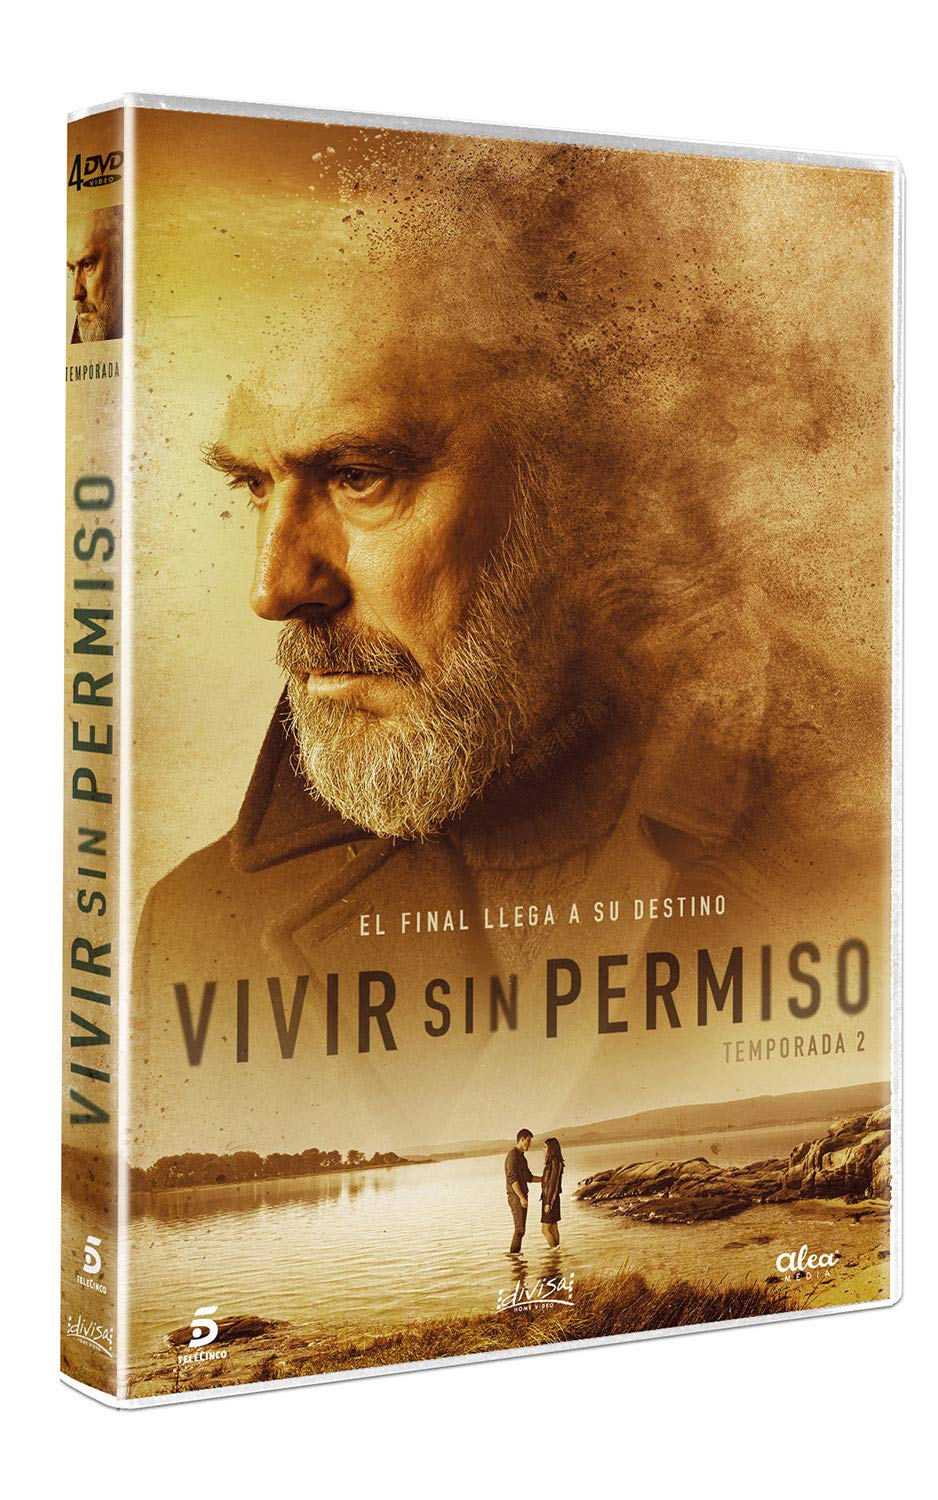 Vivir Sin Permiso Temporada Final Dvd Amazon Es Thriller José Coronado álex Gonzá Thriller Cine Y Series Tv